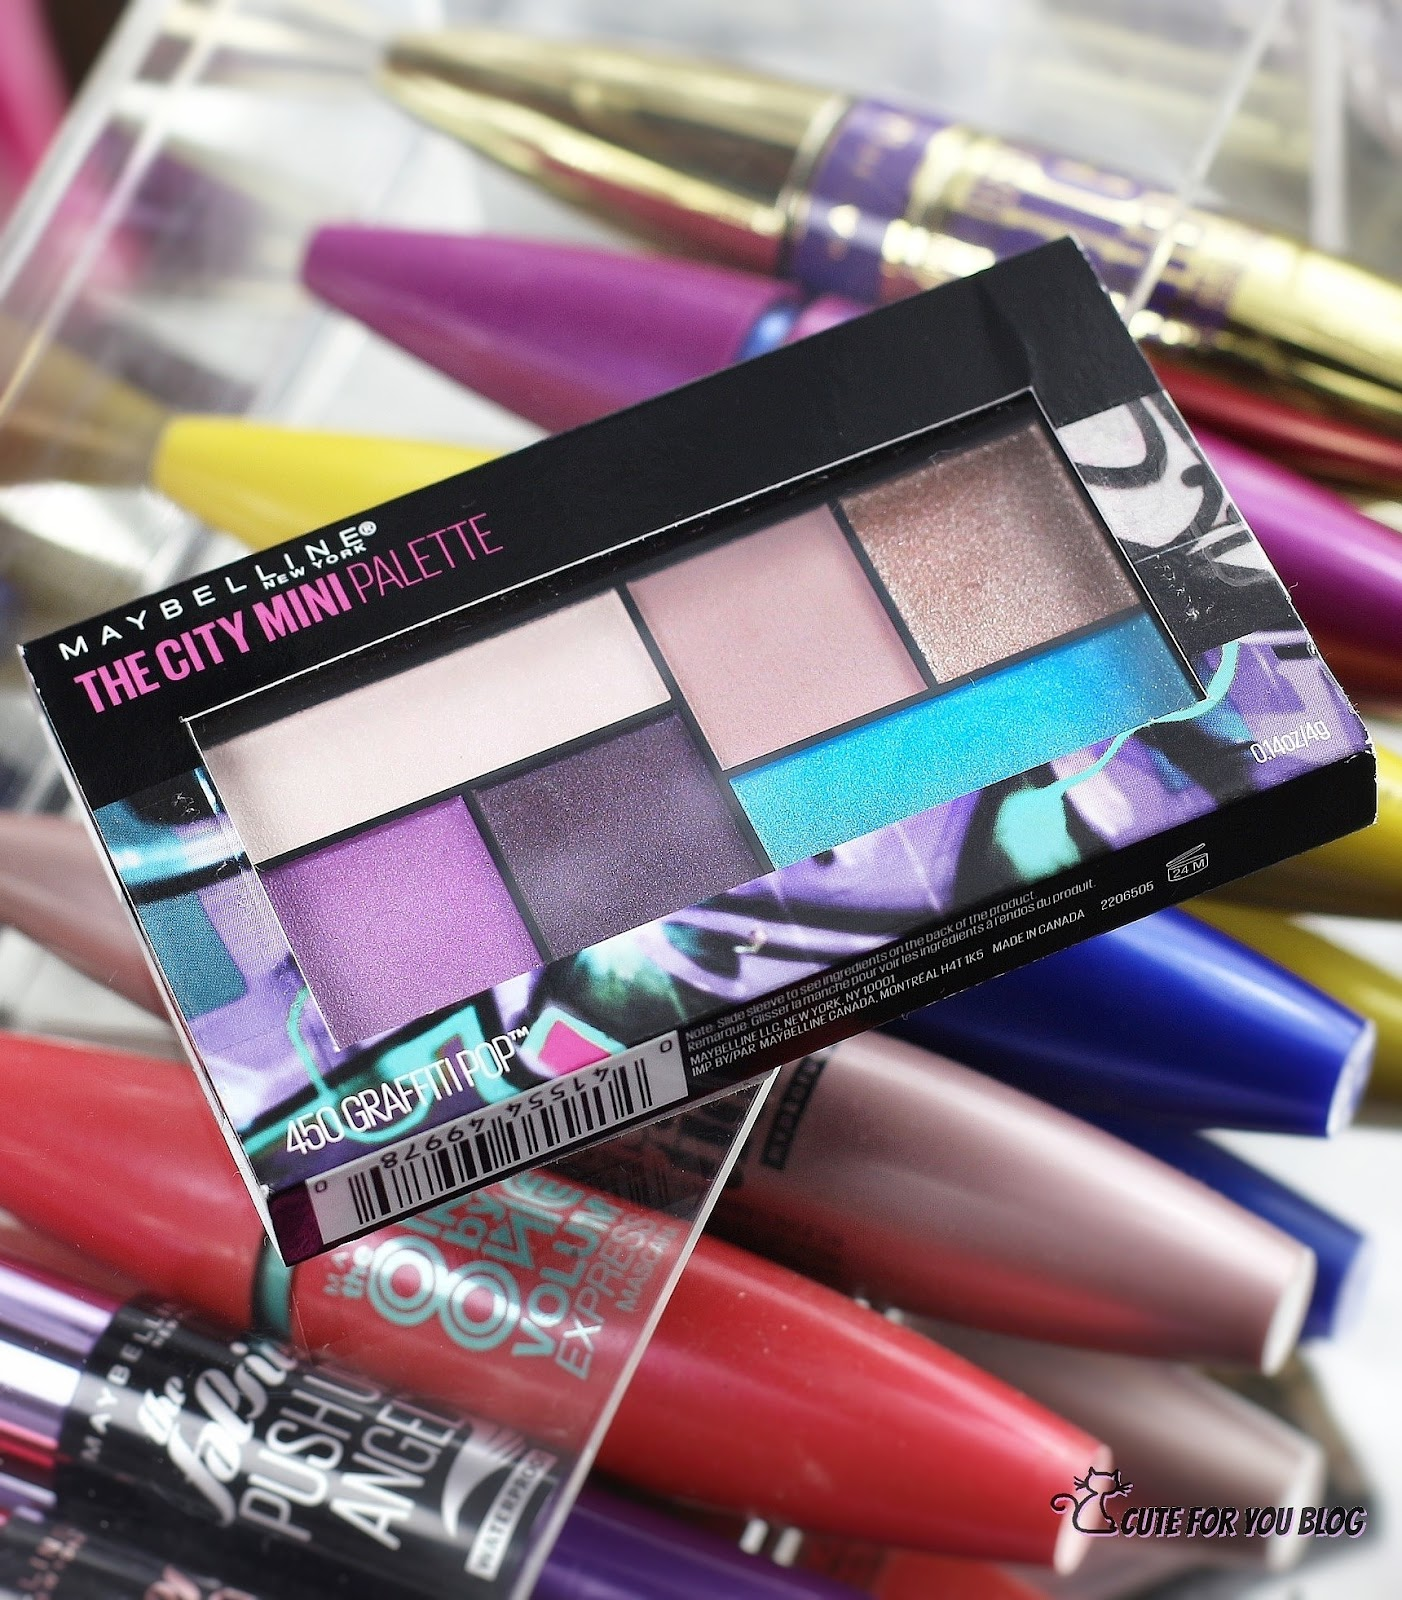 Maybelline Argentina, maybelline maquillaje, maybelline paletas, paleta maybelline, paleta de sombras maybelline, productos maybelline Argentina, reseñas maybelline, reseña paleta maybelline, the city mini palette maybelline, the city mini palette graffiti pop maybelline, sombras de ojos maybelline, Blogger Argentina, Blog de maquillaje argentina, beauty Blogger Argentina, cute for You Blog, karo_by_cuteforyou_blog, Karolina Luke Blog, maybellinearg, maybelline New York Argentina, the falsies Push Up Angel, swatches maybelline, swatches the city mini palette graffiti pop